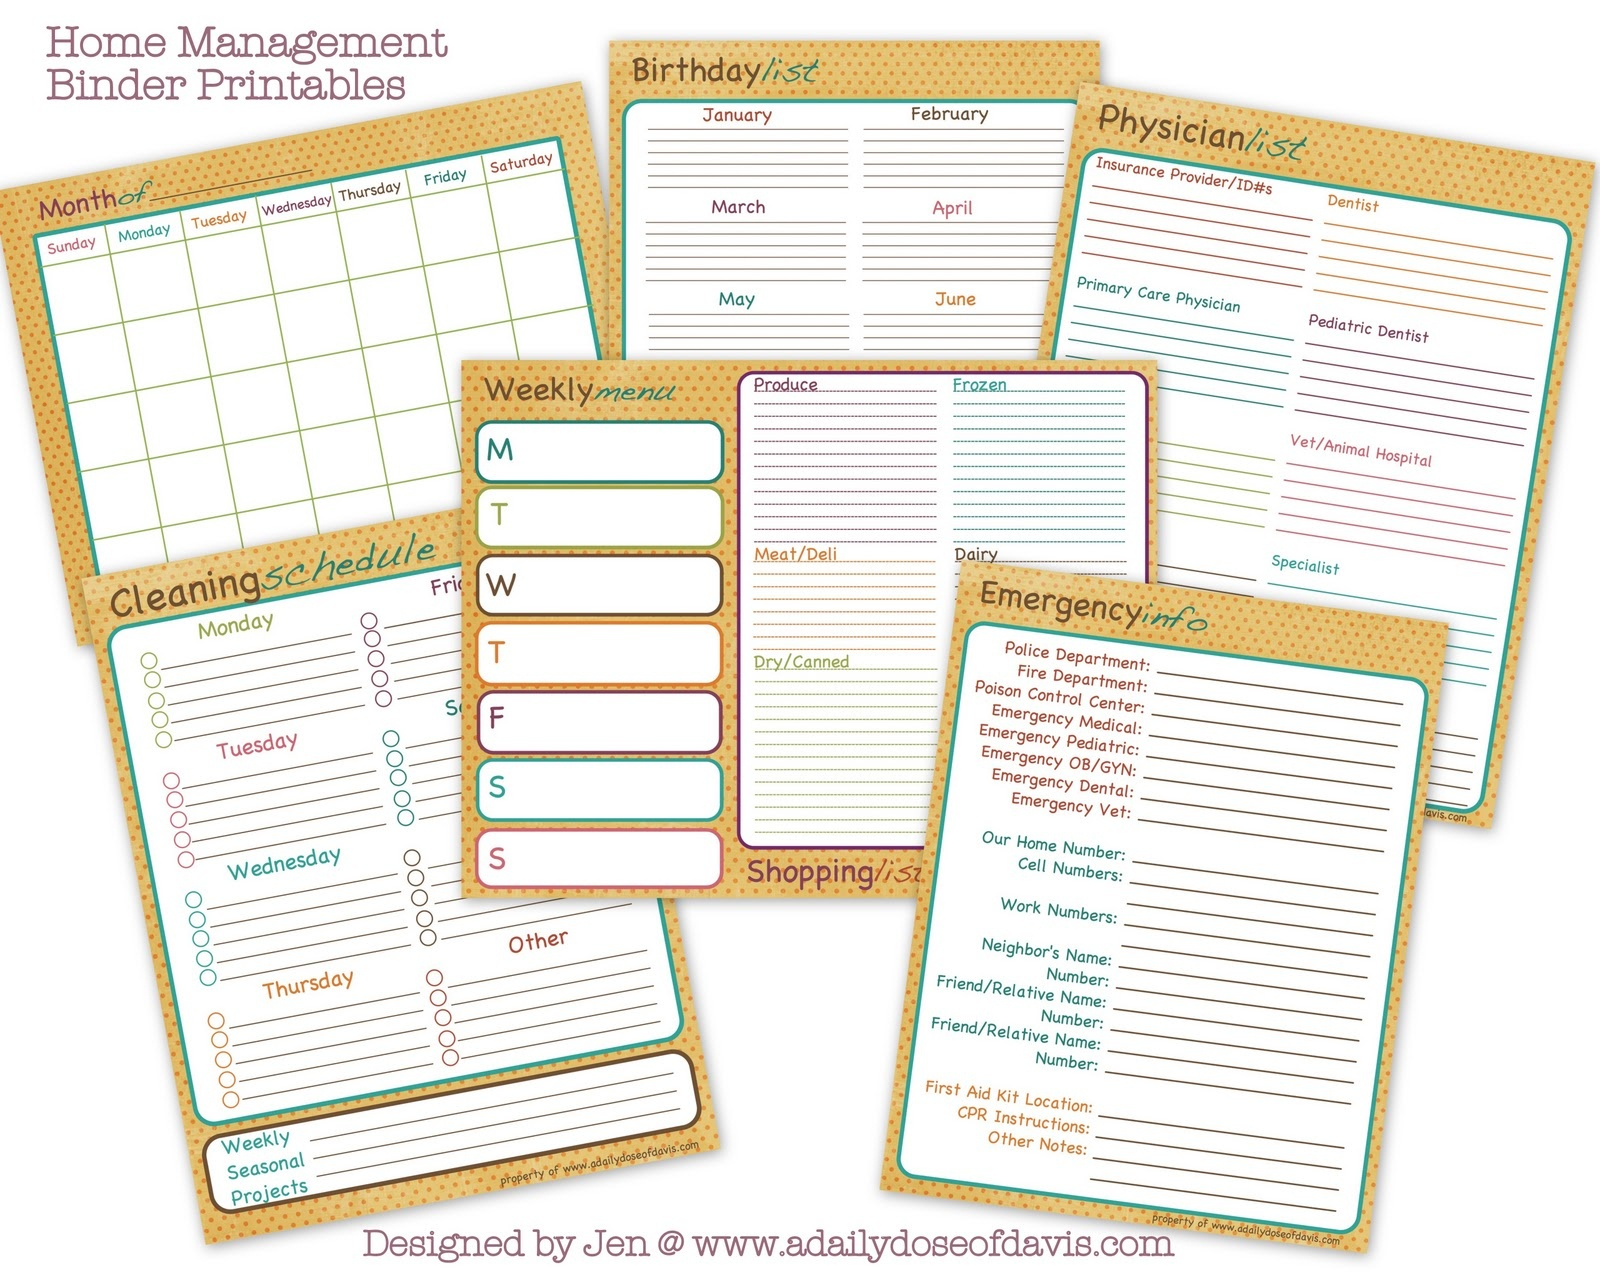 Tips For Creating Your Home Management Binder – Life More Simply - Free Home Organization Binder Printables